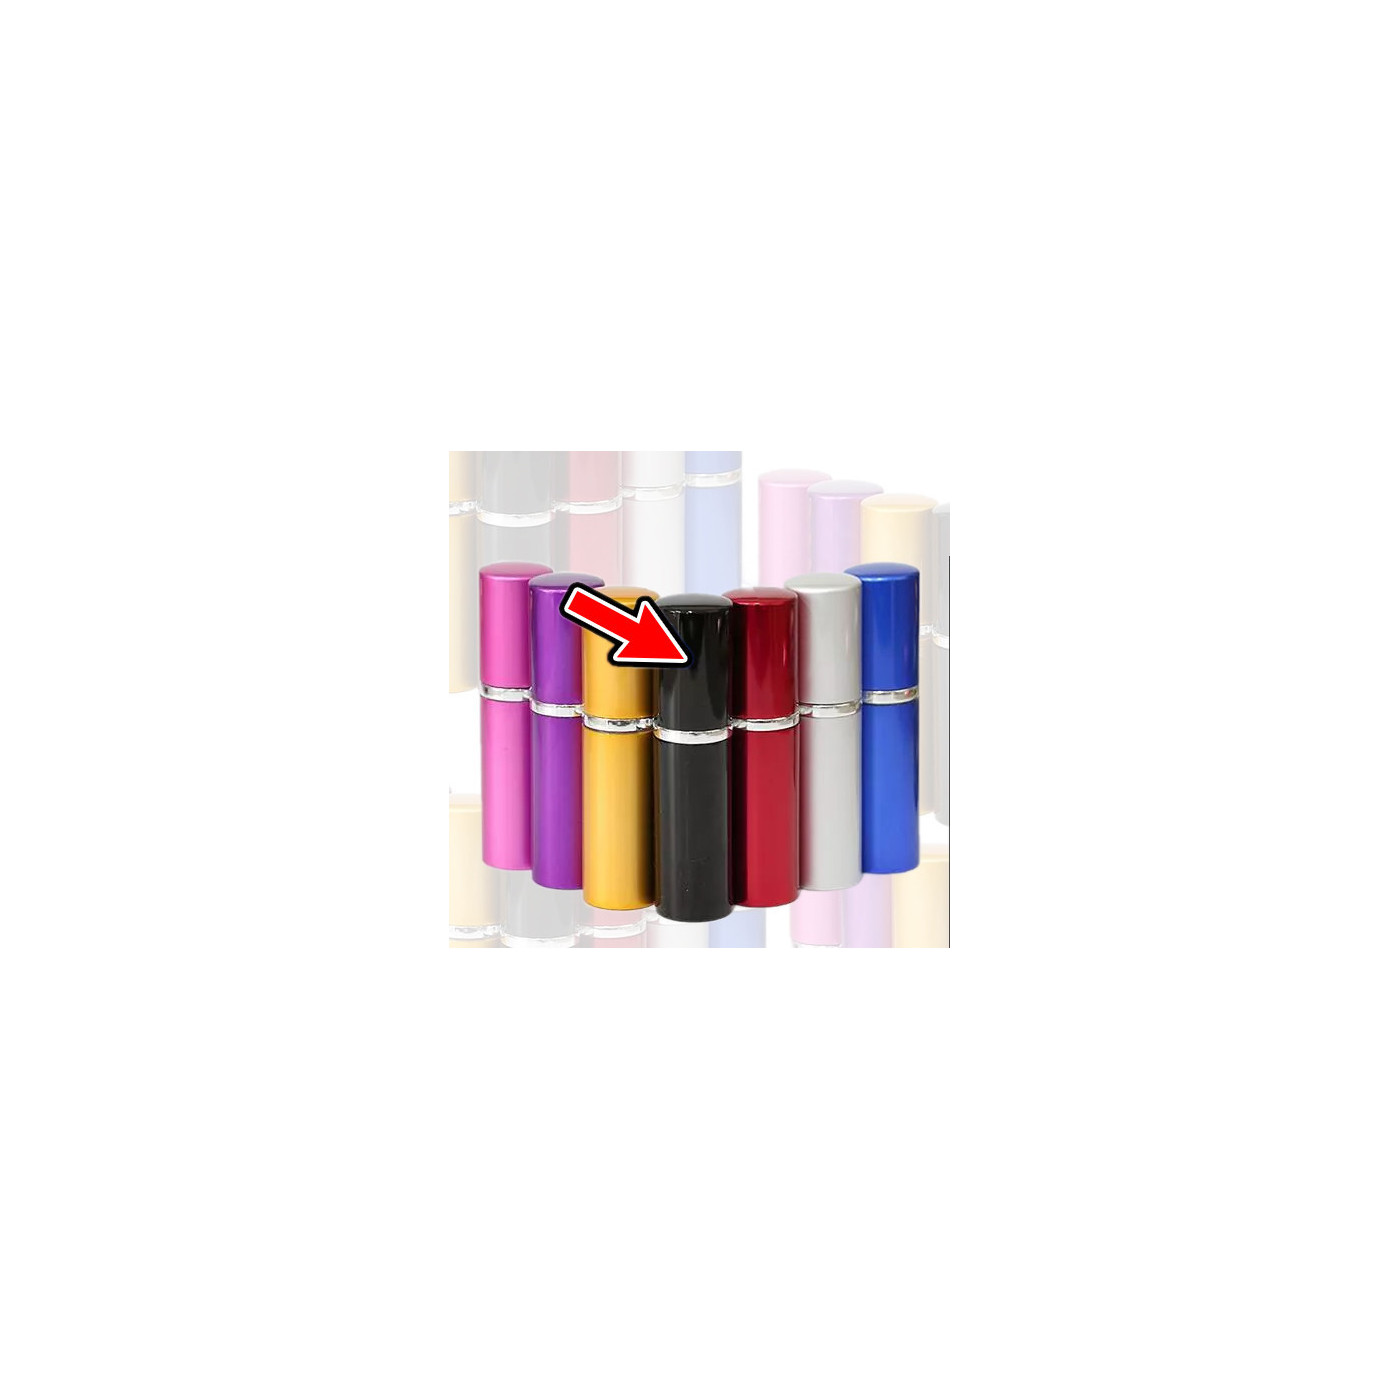 Set of 5 atomizers (10 ml, black)  - 1